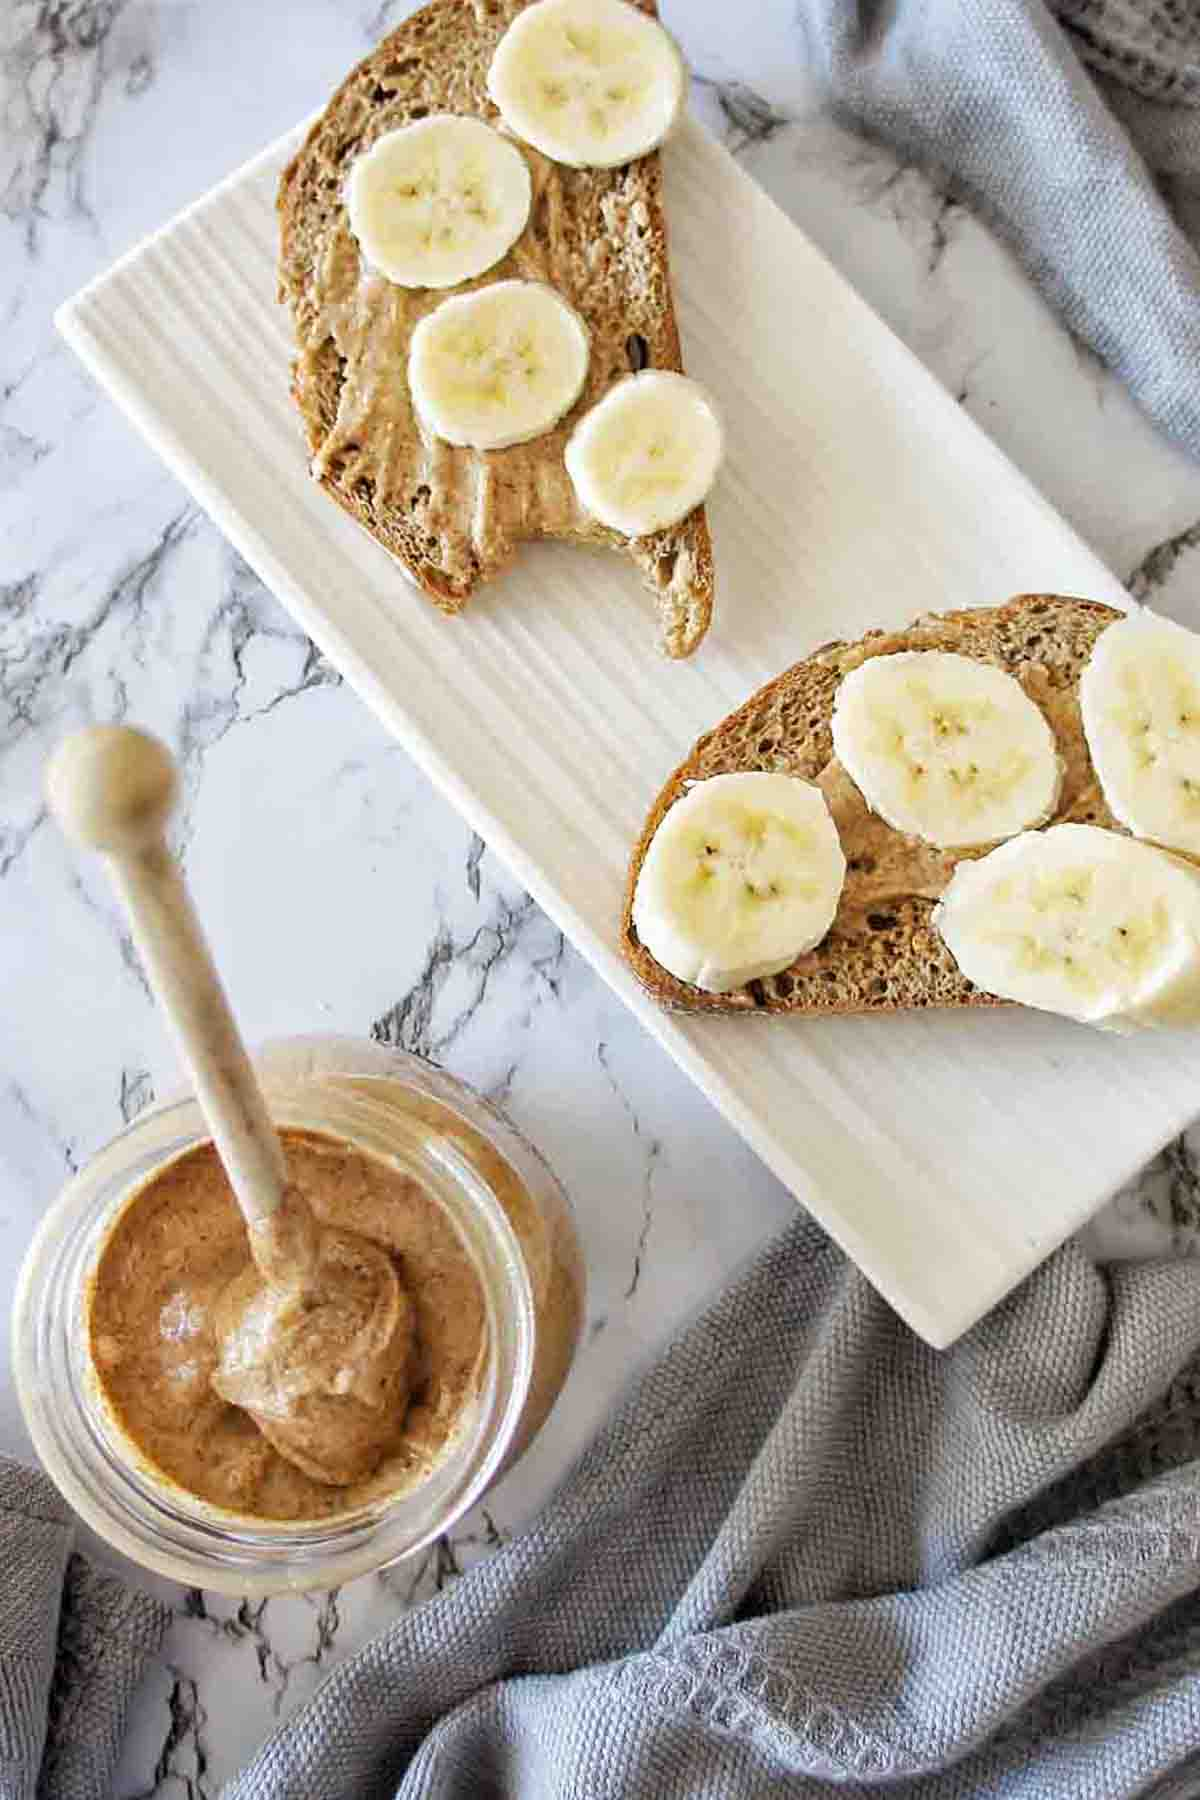 Almond Butter spread on rye bread with sliced bananas